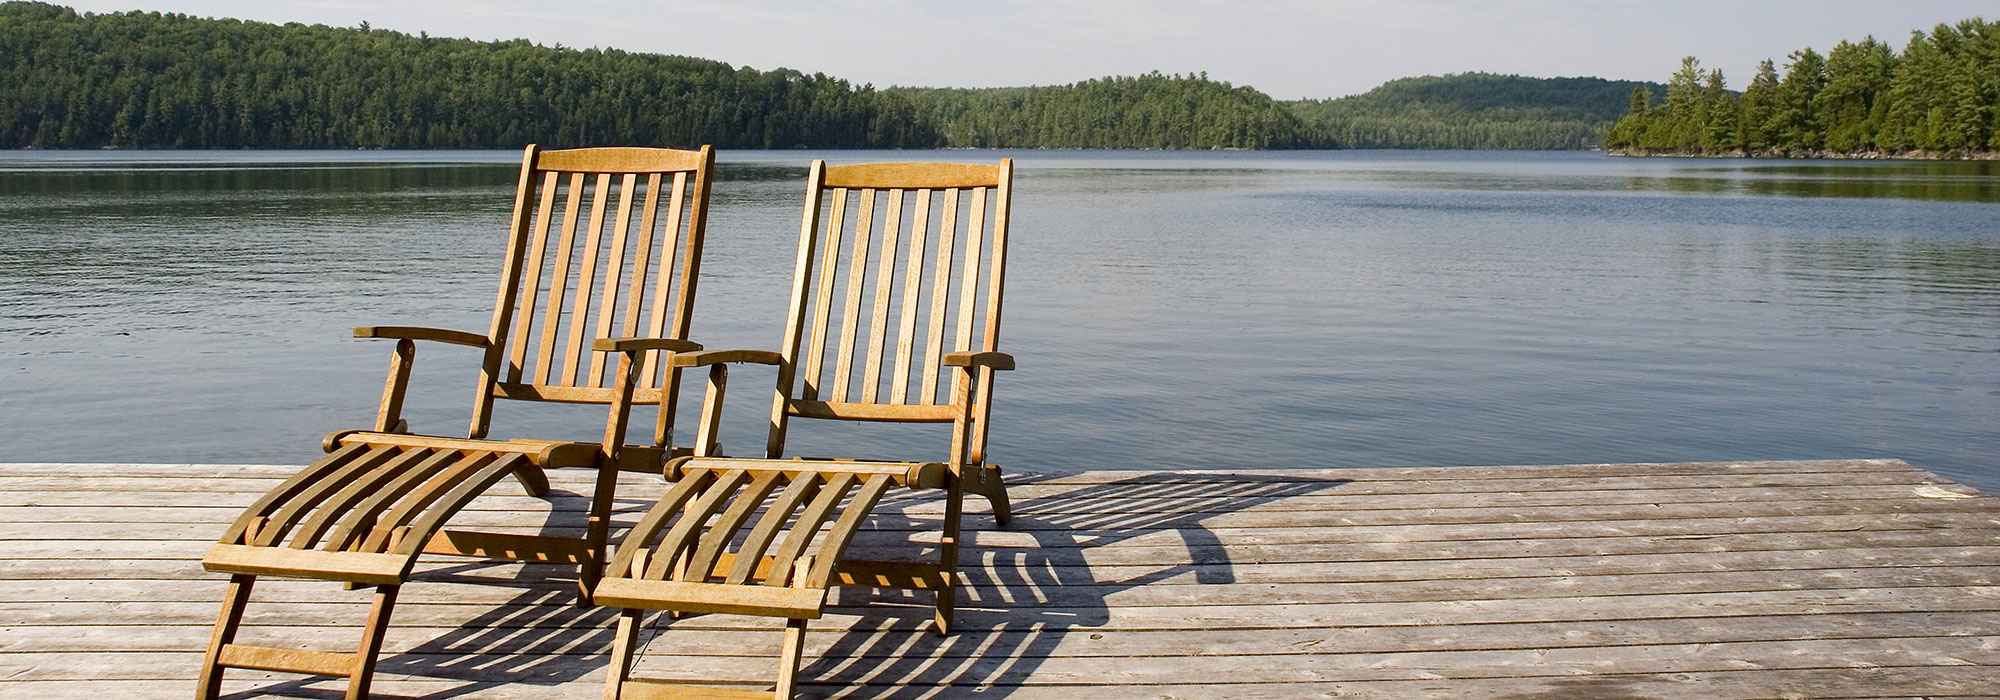 home-banner-lake-side-deck-chairs-pleasant-view-realty-plymouth-wi